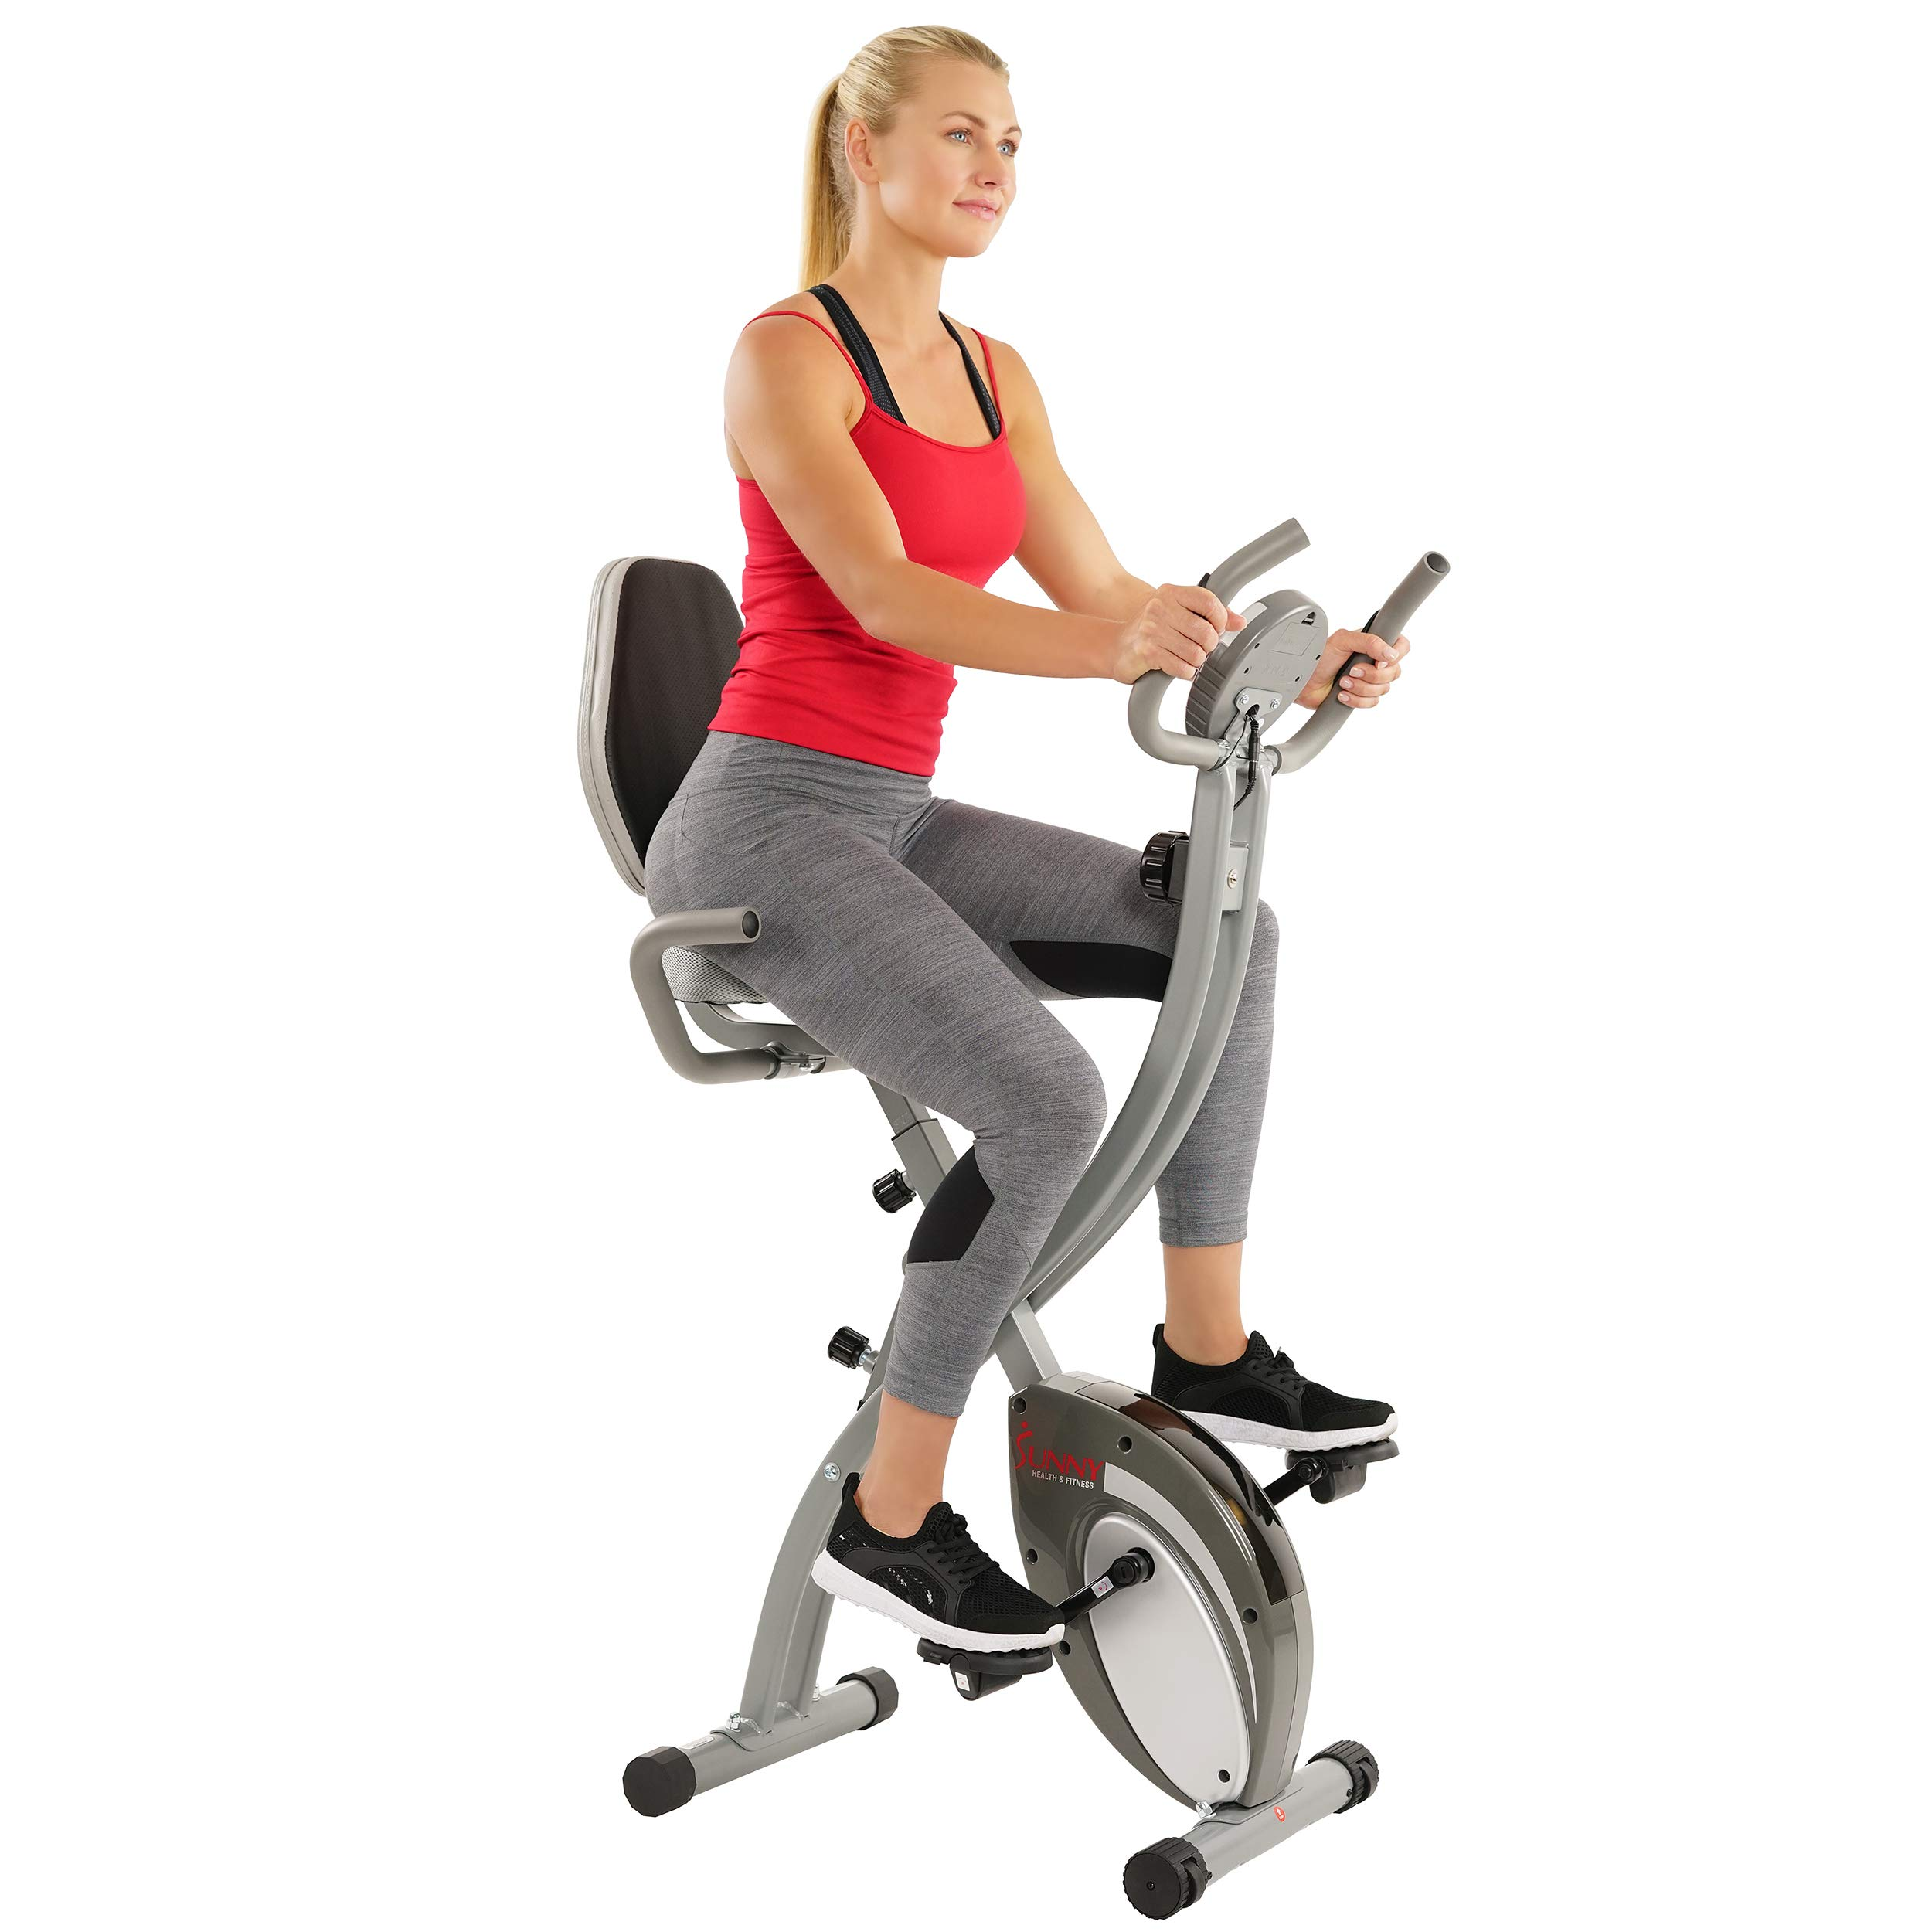 Sunny Health Fitness Recumbent Monitoring